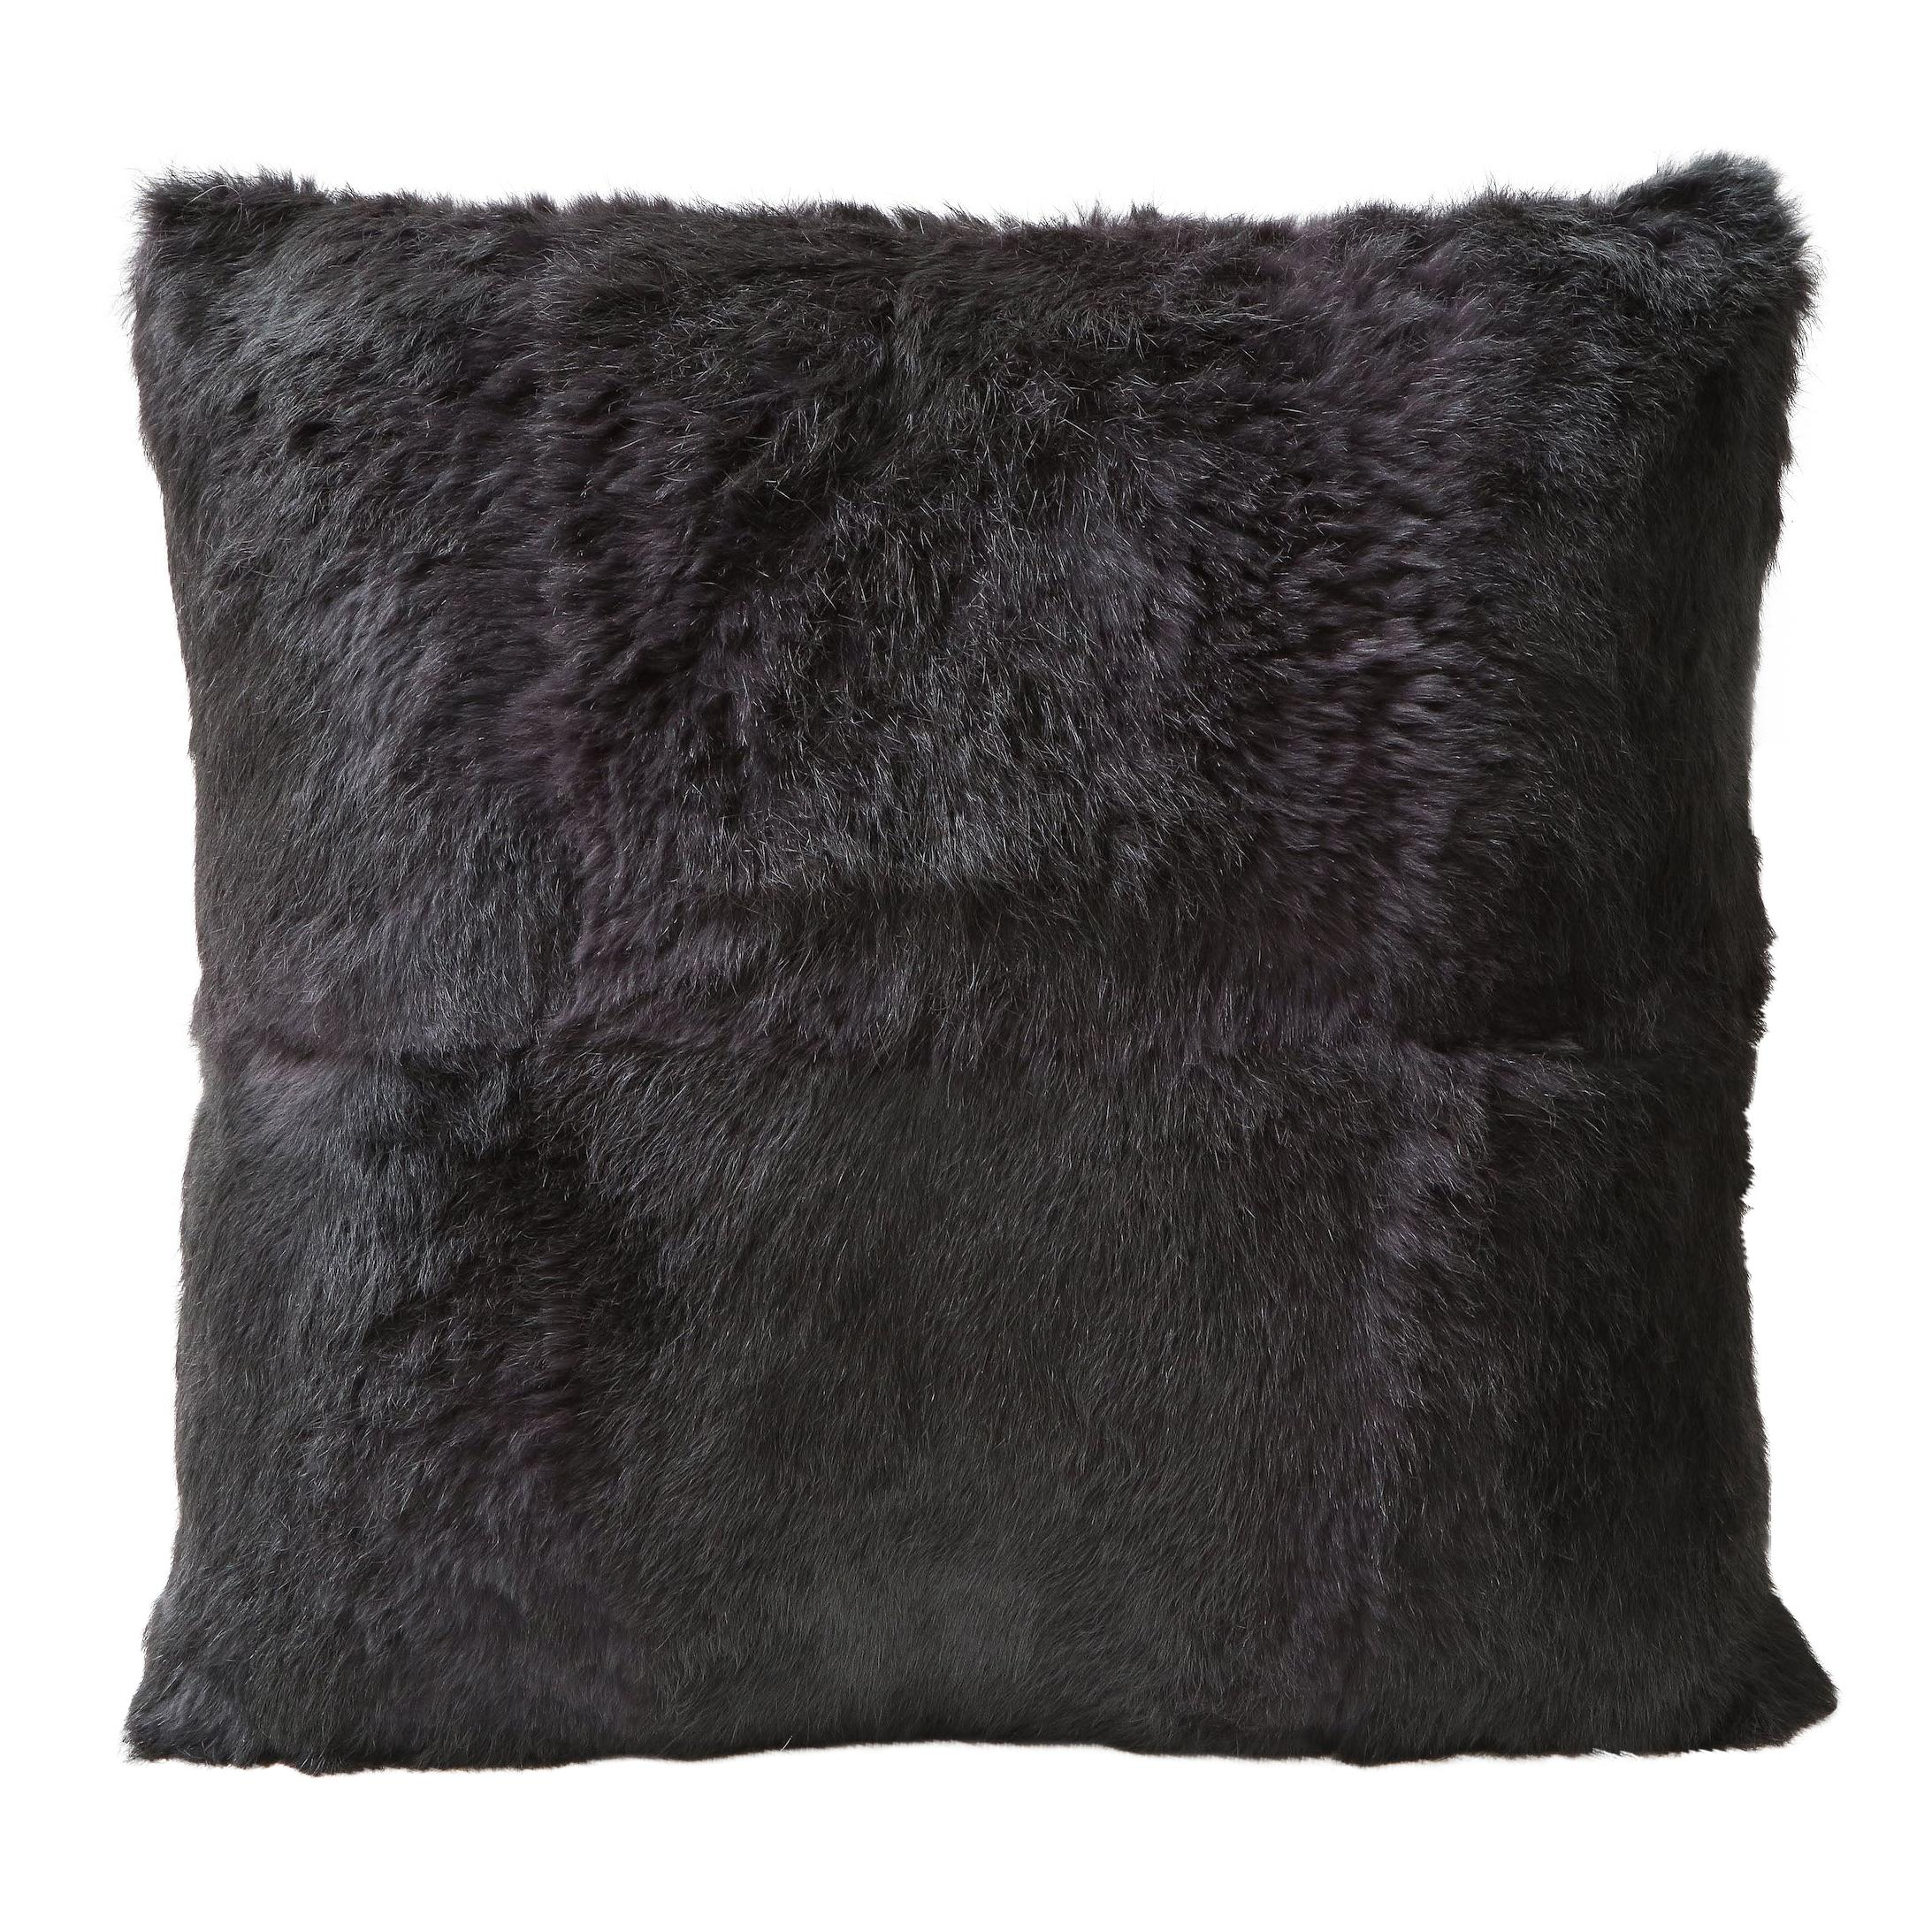 Fur Pillows and Throws 97 For Sale at